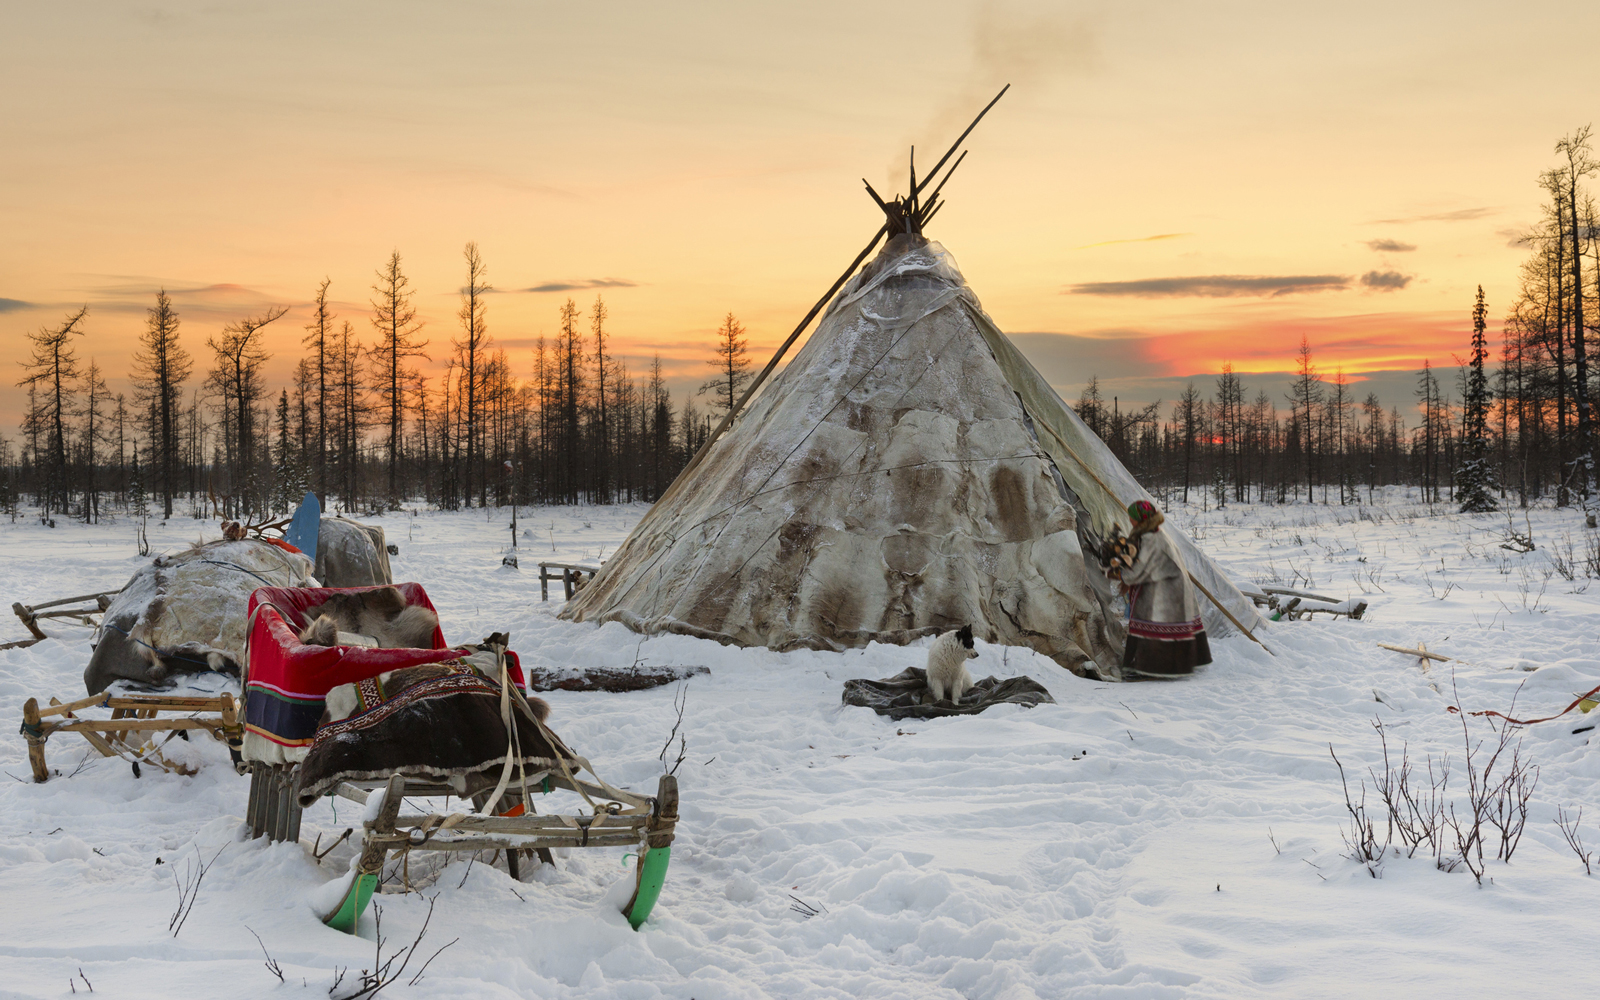 Nomadic tribe in the tundra